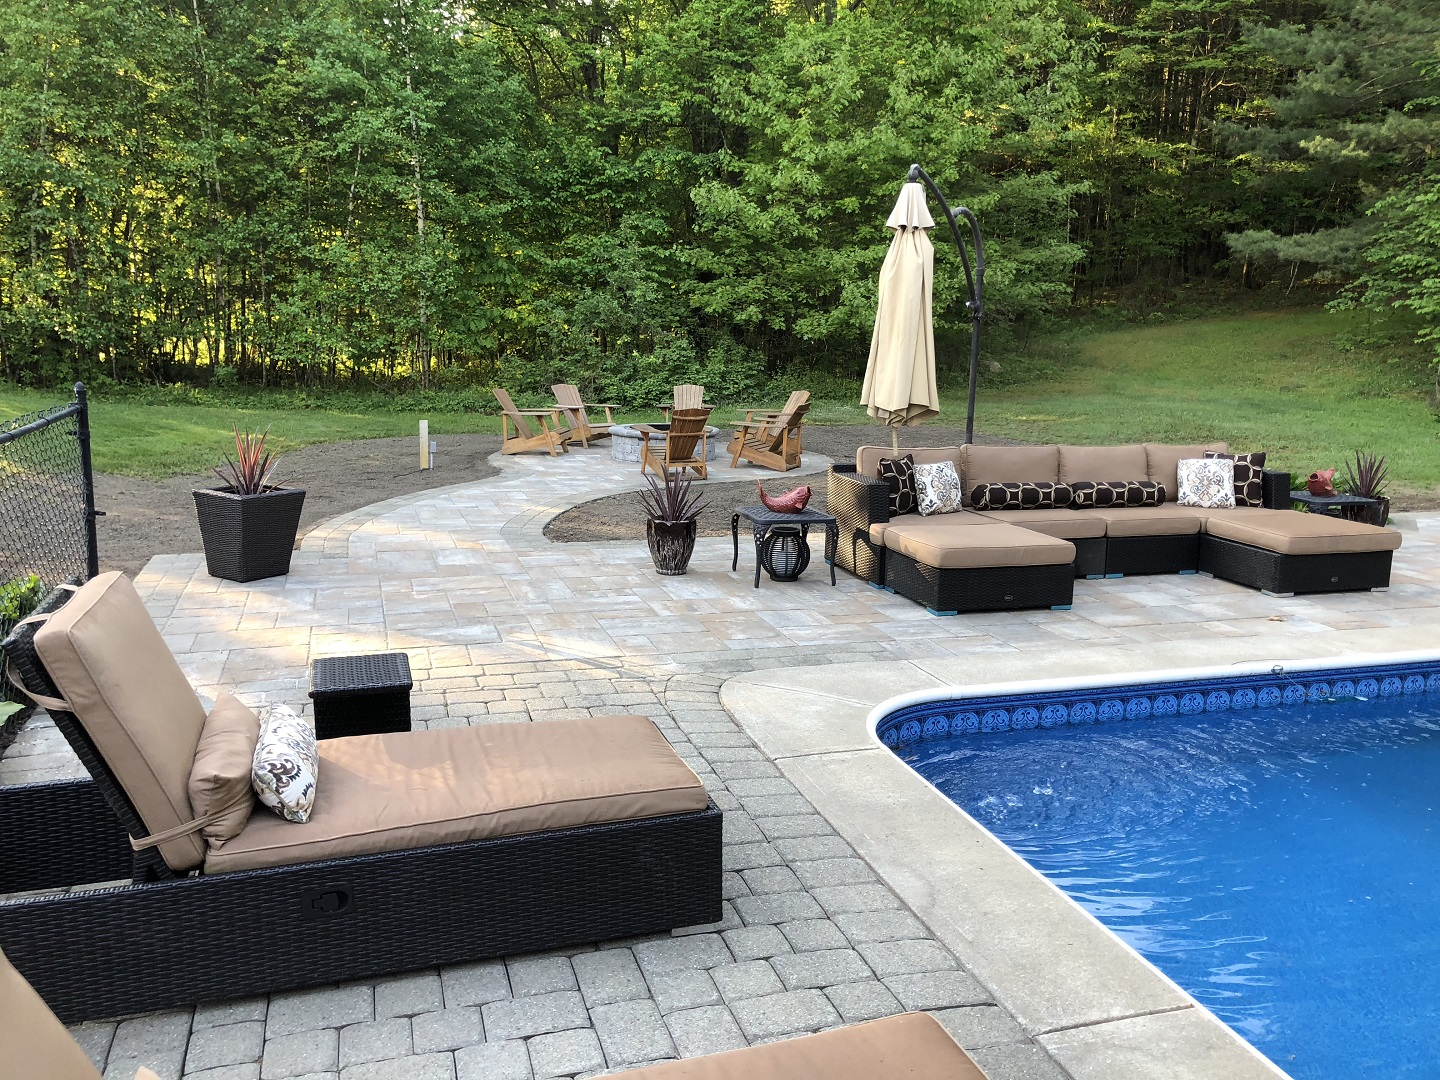 Top quality pool deck and Unilock patio pavers in Halfmoon, NY